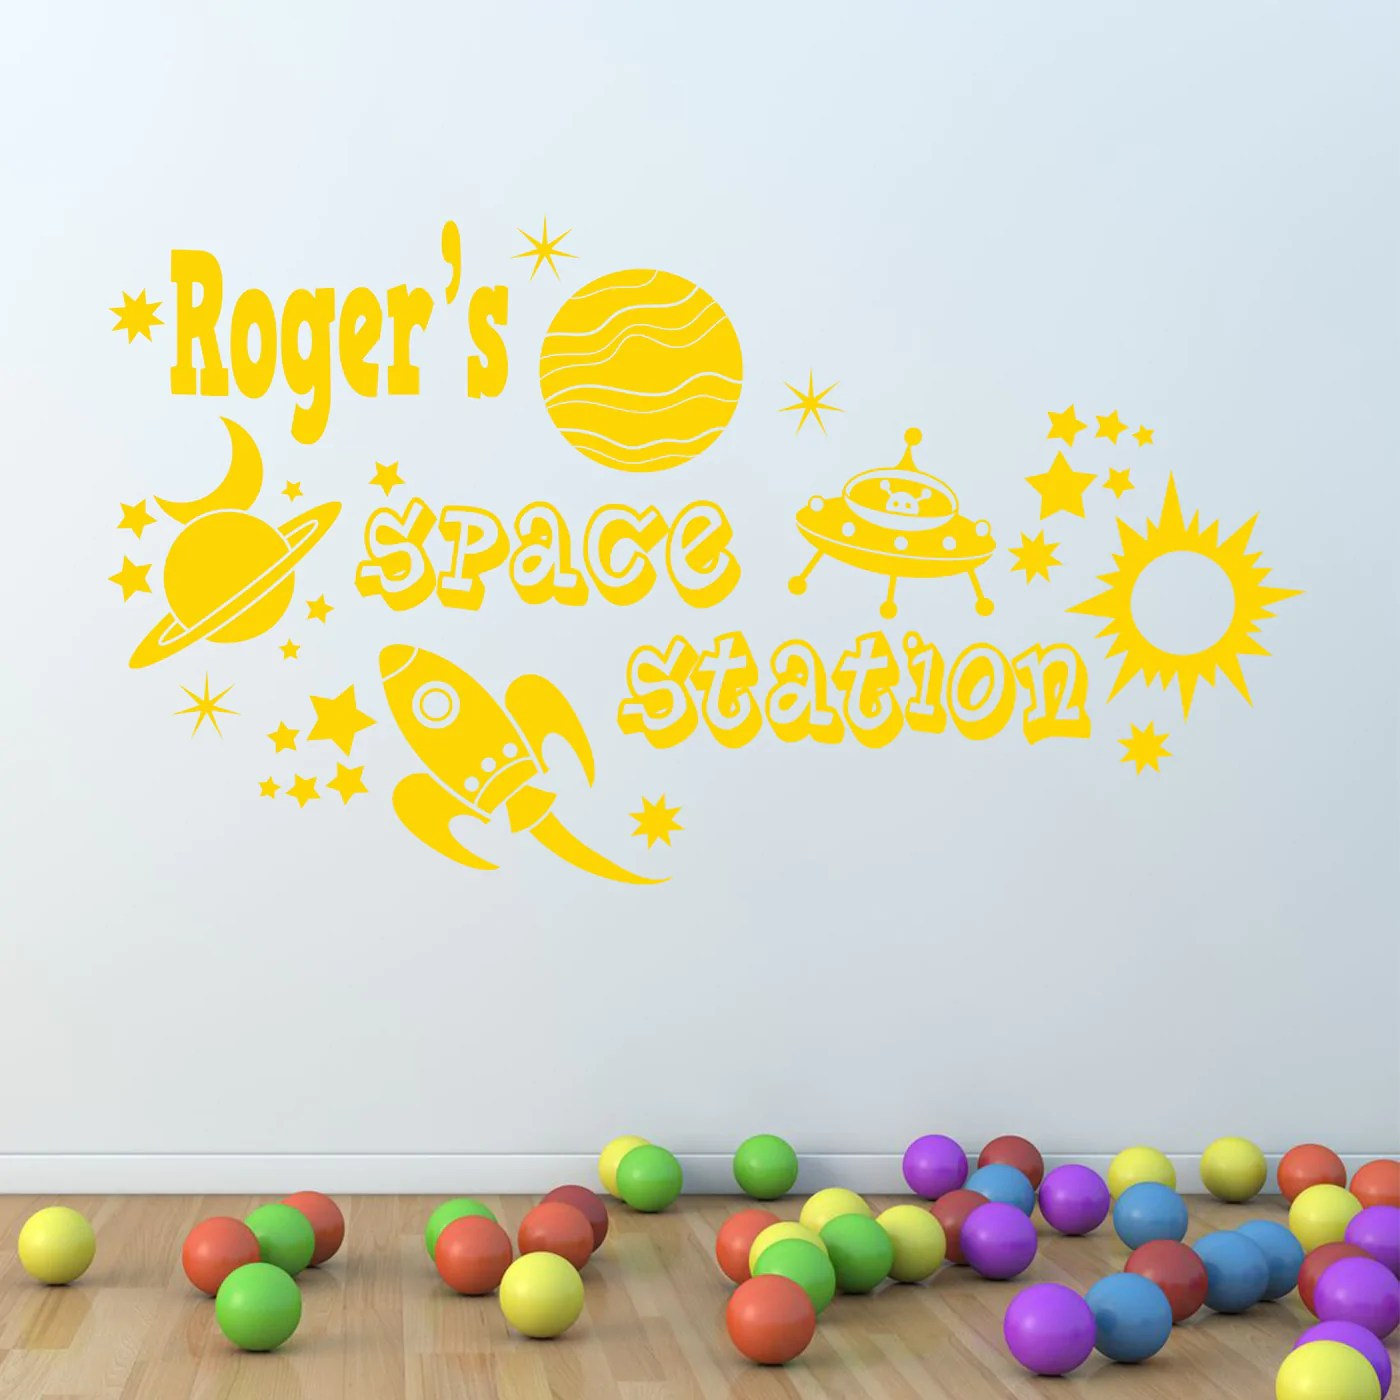 Planets Wall Art Personalised Space Rocket Planets Vinyl Wall Art Sticker Mural Decal Any Name